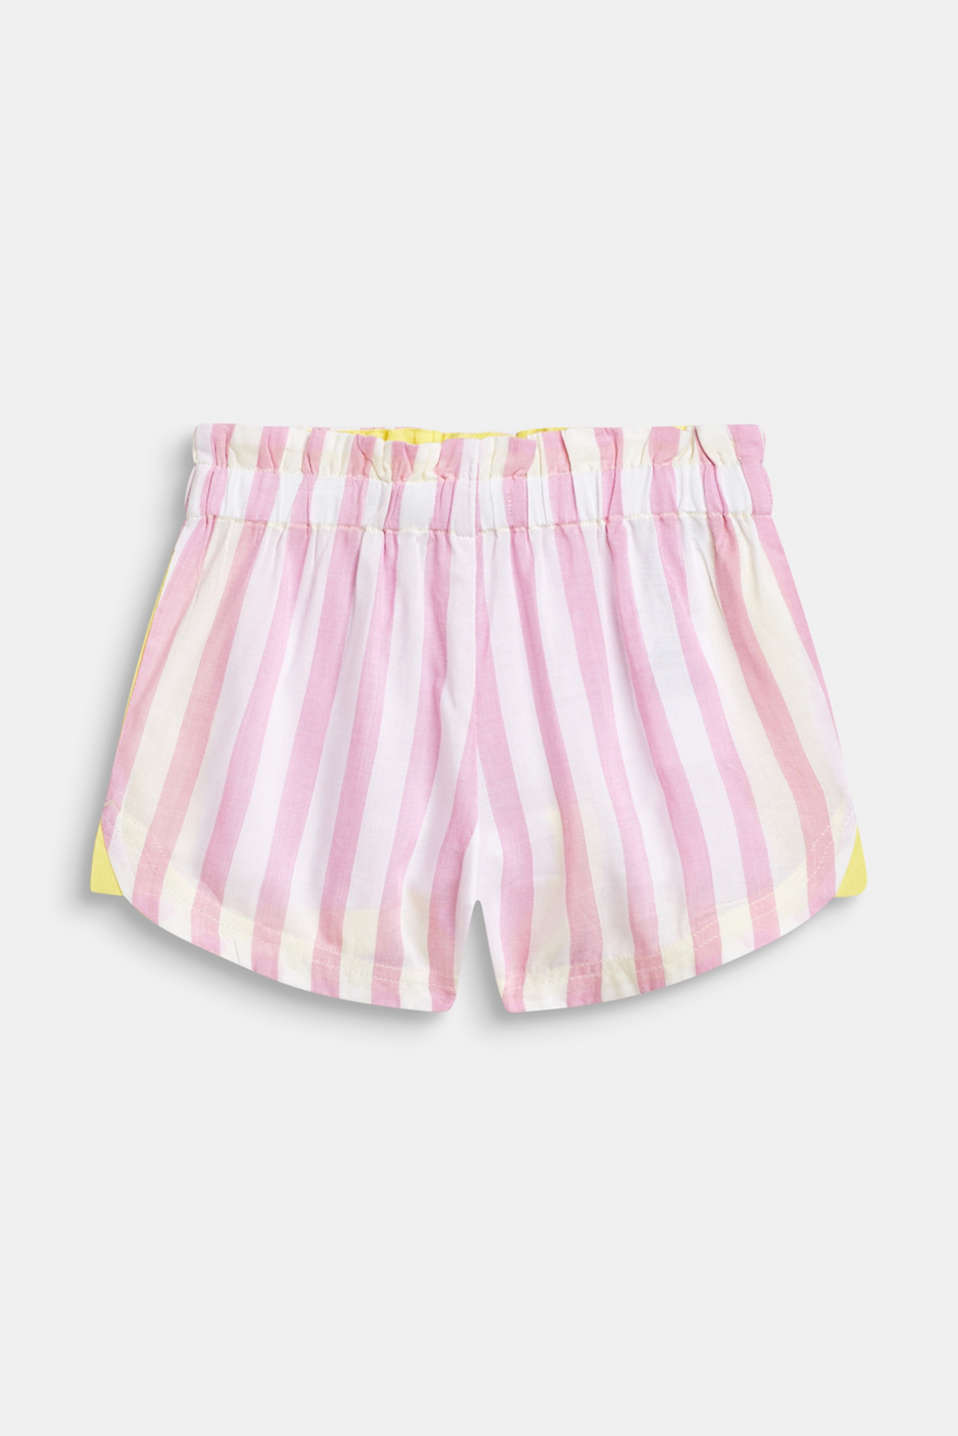 Striped woven shorts with a print, 100% cotton, CANDY PINK, detail image number 1